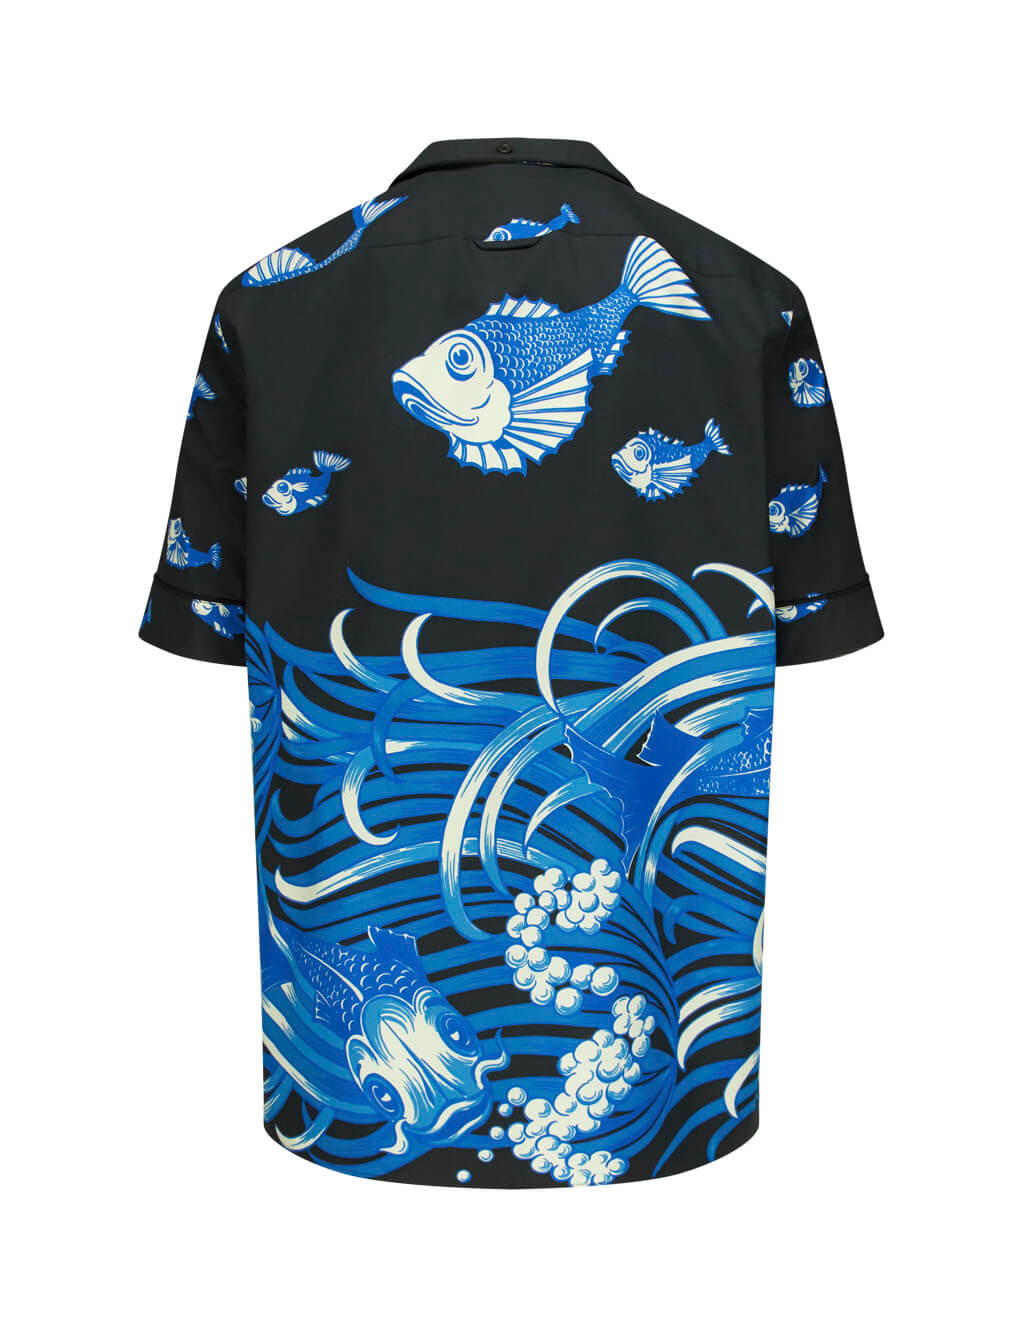 Valentino Men's Black/Blue Cotton Fishrain Shirt SV3AA7685D3IYM